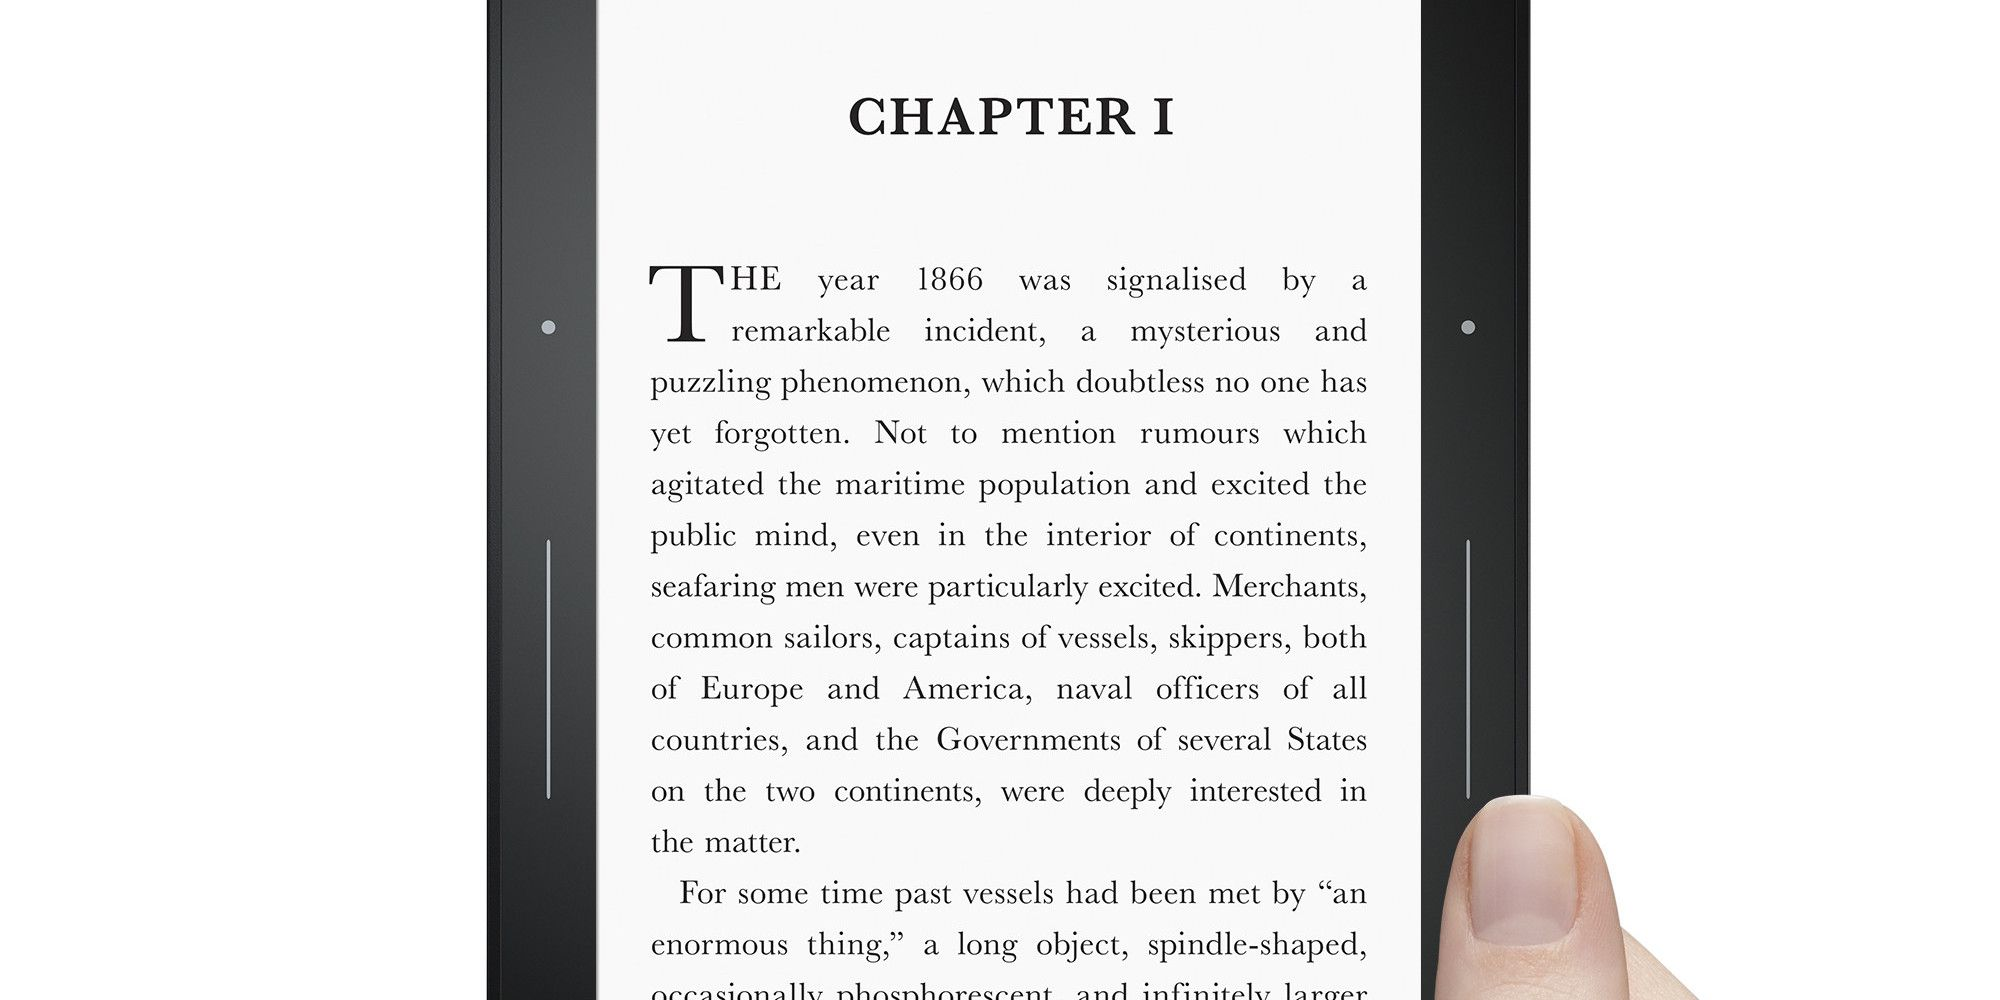 Amazon fixes the biggest problem with kindle with images